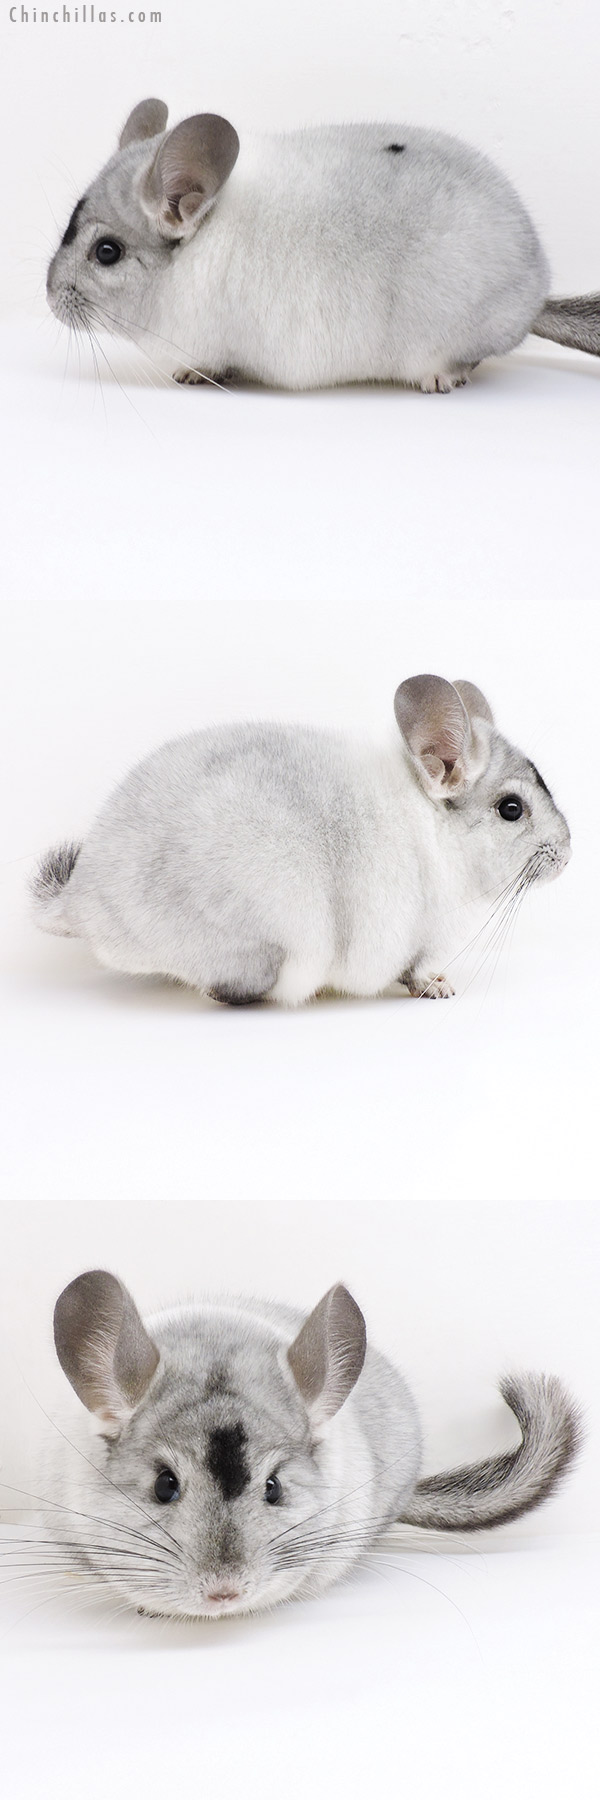 19154 Herd Improvement Quality Extreme White Mosaic Male Chinchilla